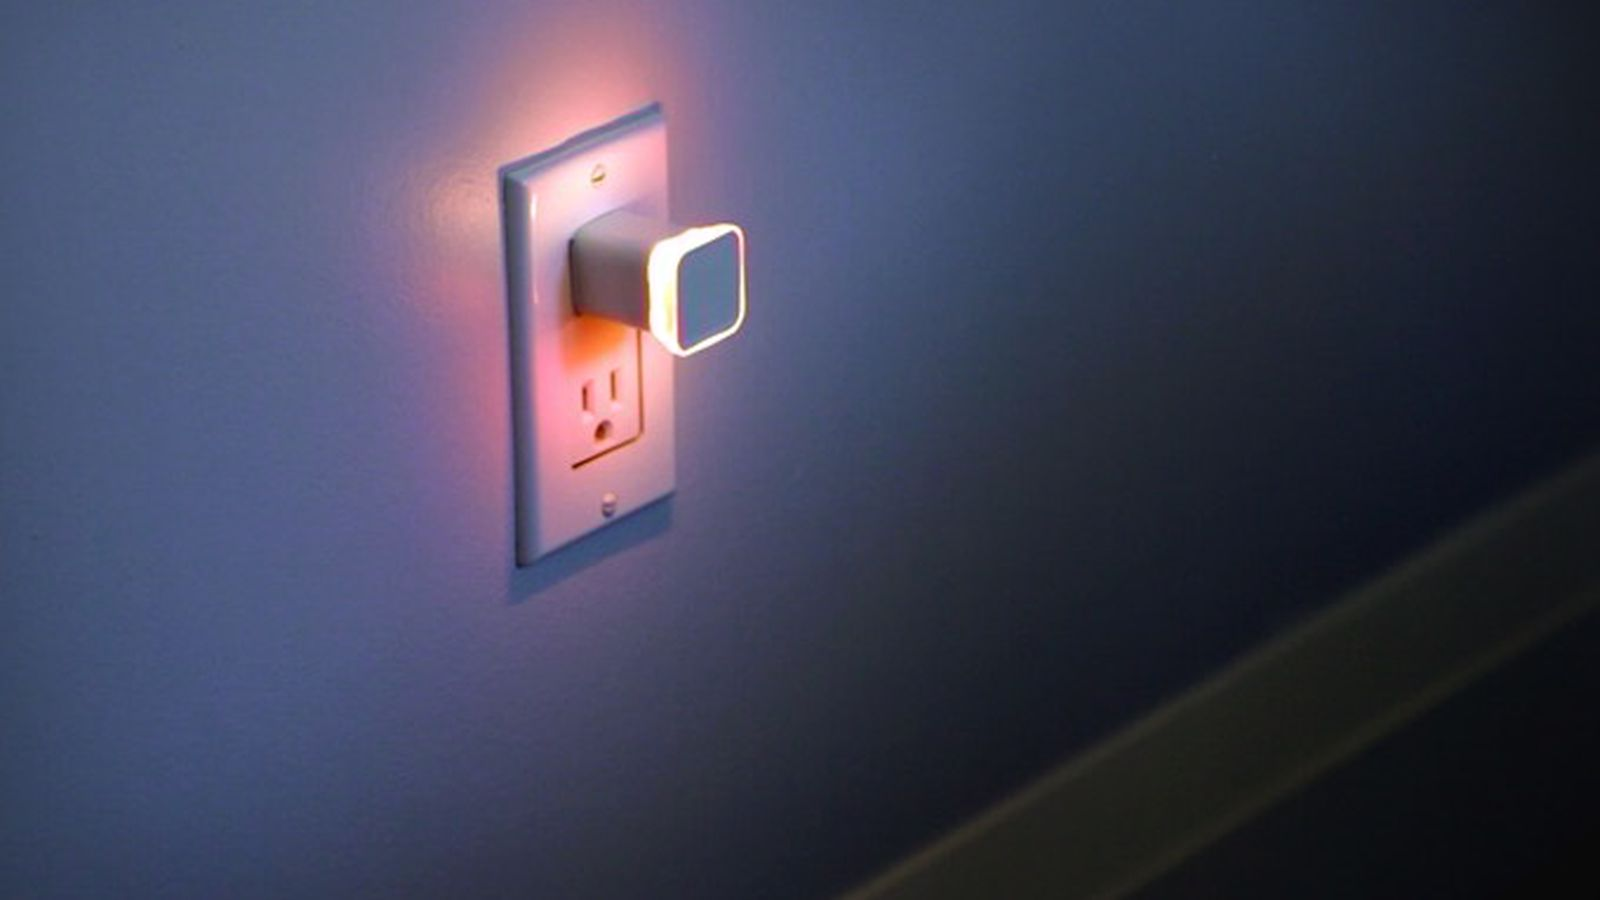 theverge.com - Now your nightlight can notify you of retweets and emails